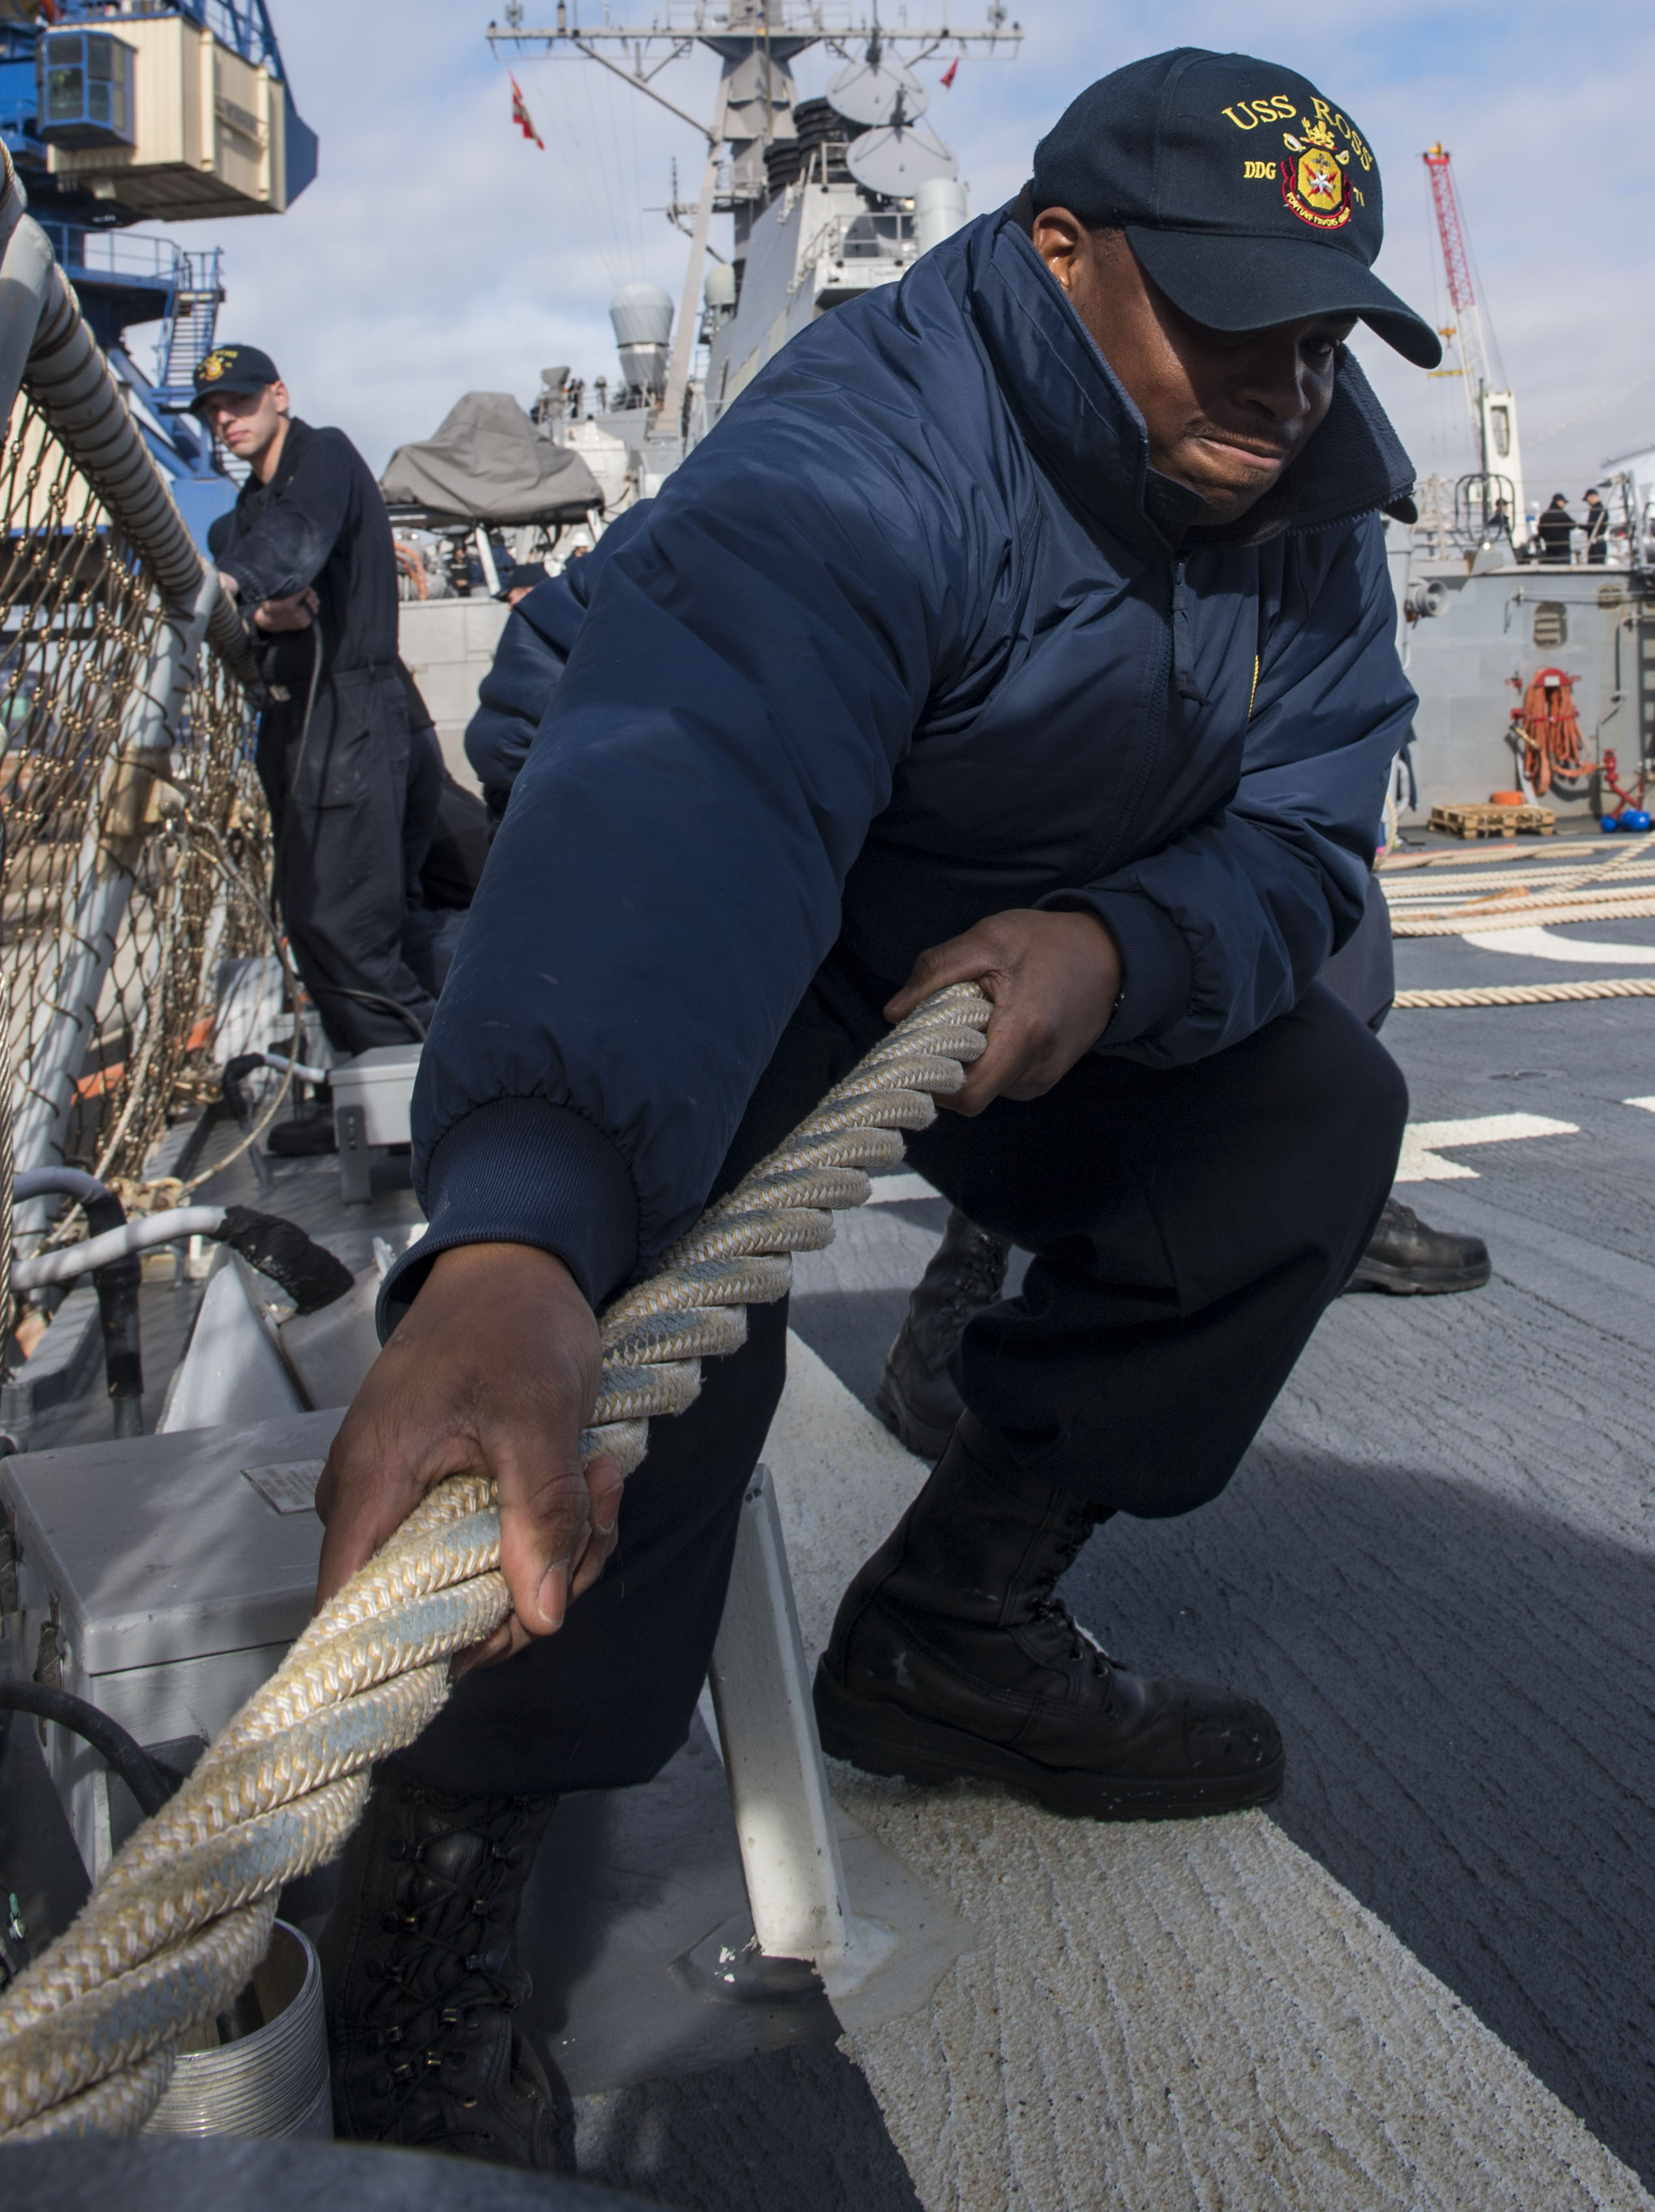 AGADIR, Morocco (Jan. 10, 2018) Fire Controlman (Aegis) 3rd Class Mark Bowman heaves a mooring line as the Arleigh Burke-class guided-missile destroyer USS Ross (DDG 71) pulls in to Agadir, Morocco, Jan. 10, 2018. Ross, forward-deployed to Rota, Spain, is on its sixth patrol in the U.S. 6th Fleet area of operations in support of regional allies and partners and U.S. national security interests in Europe and Africa. (U.S. Navy photo by Mass Communication Specialist 1st Class Kyle Steckler/Released)